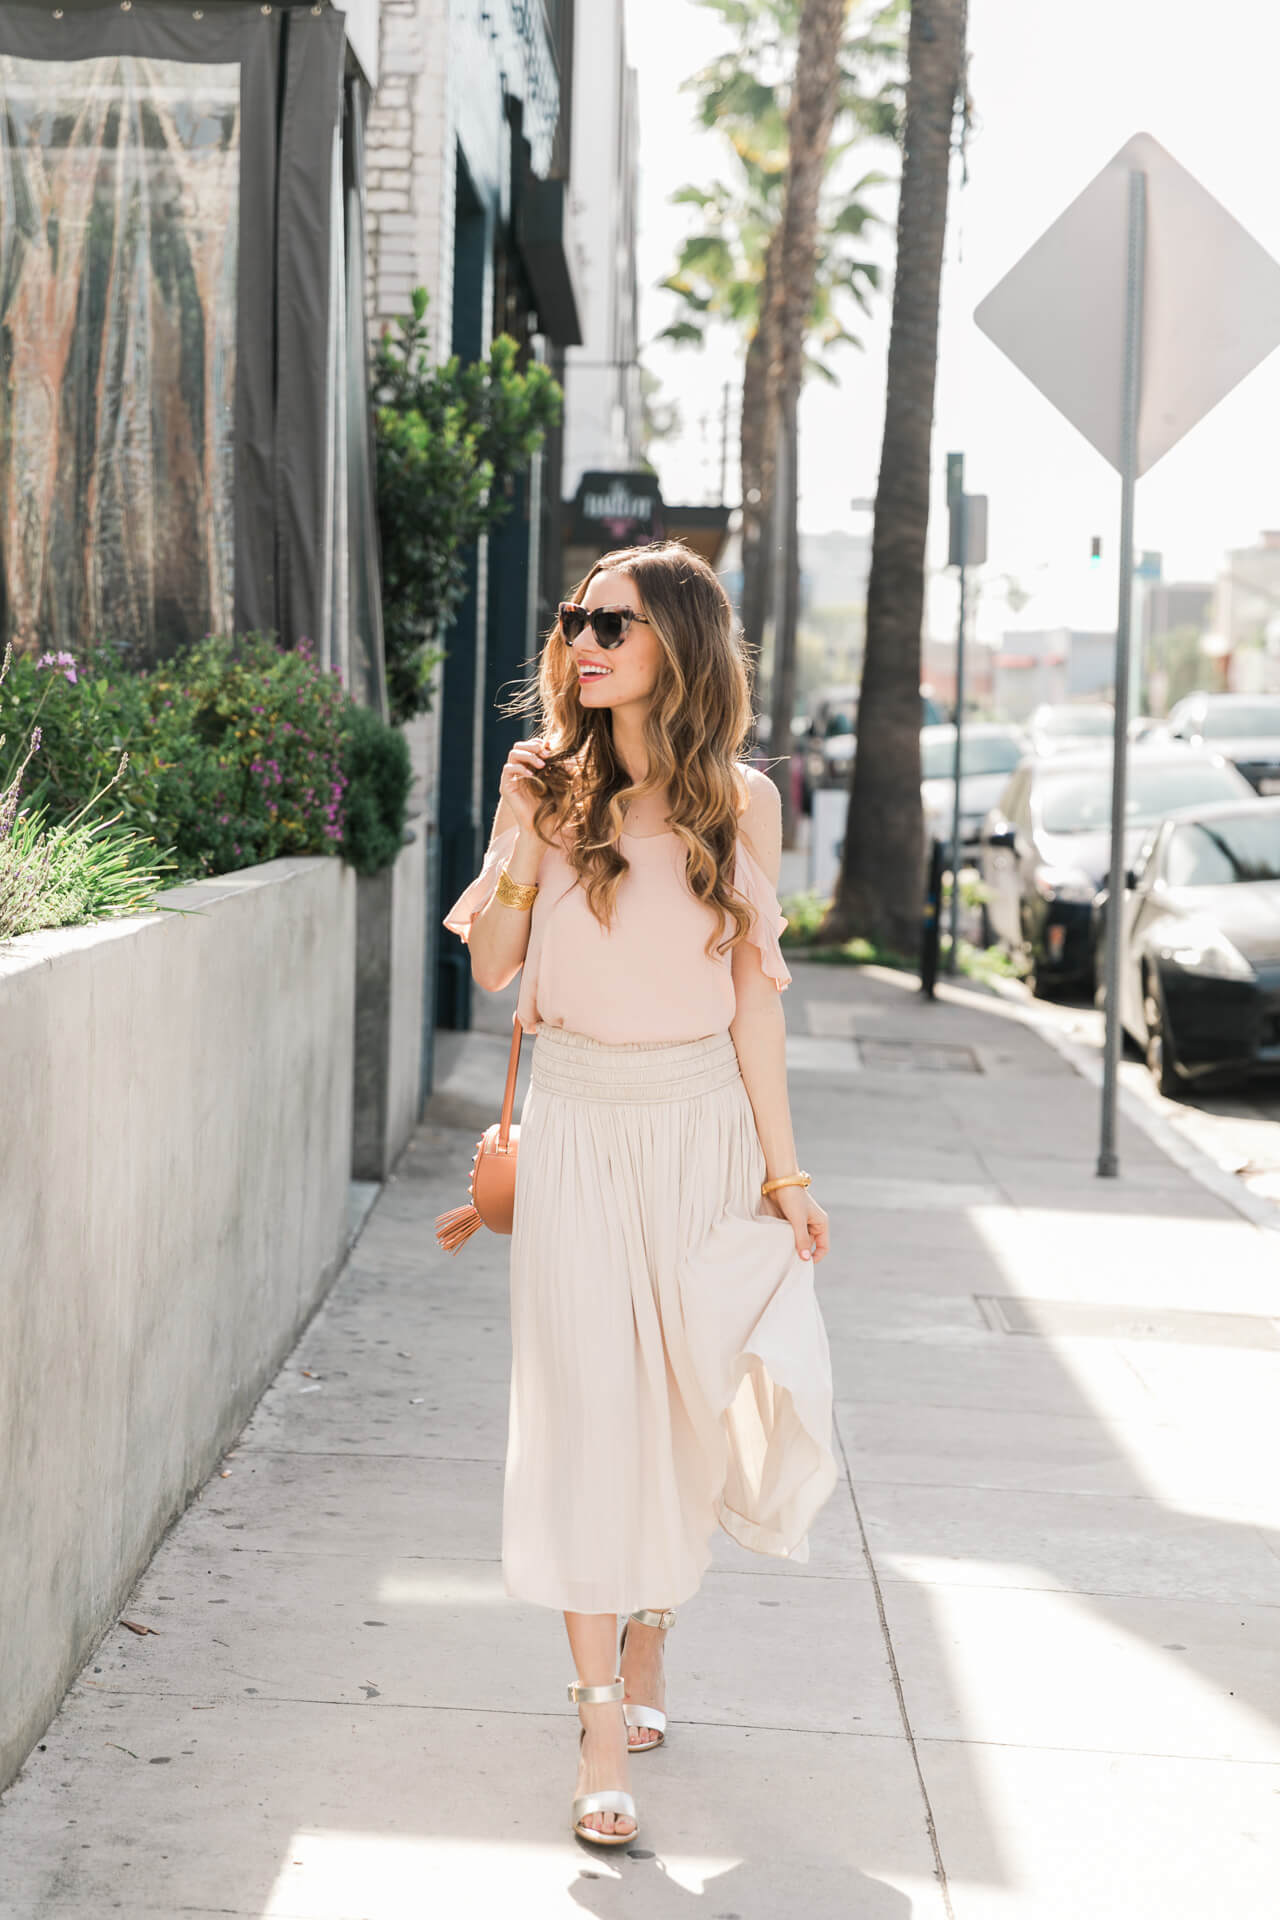 los angeles fashion blogger outfit inspiration - feminine style